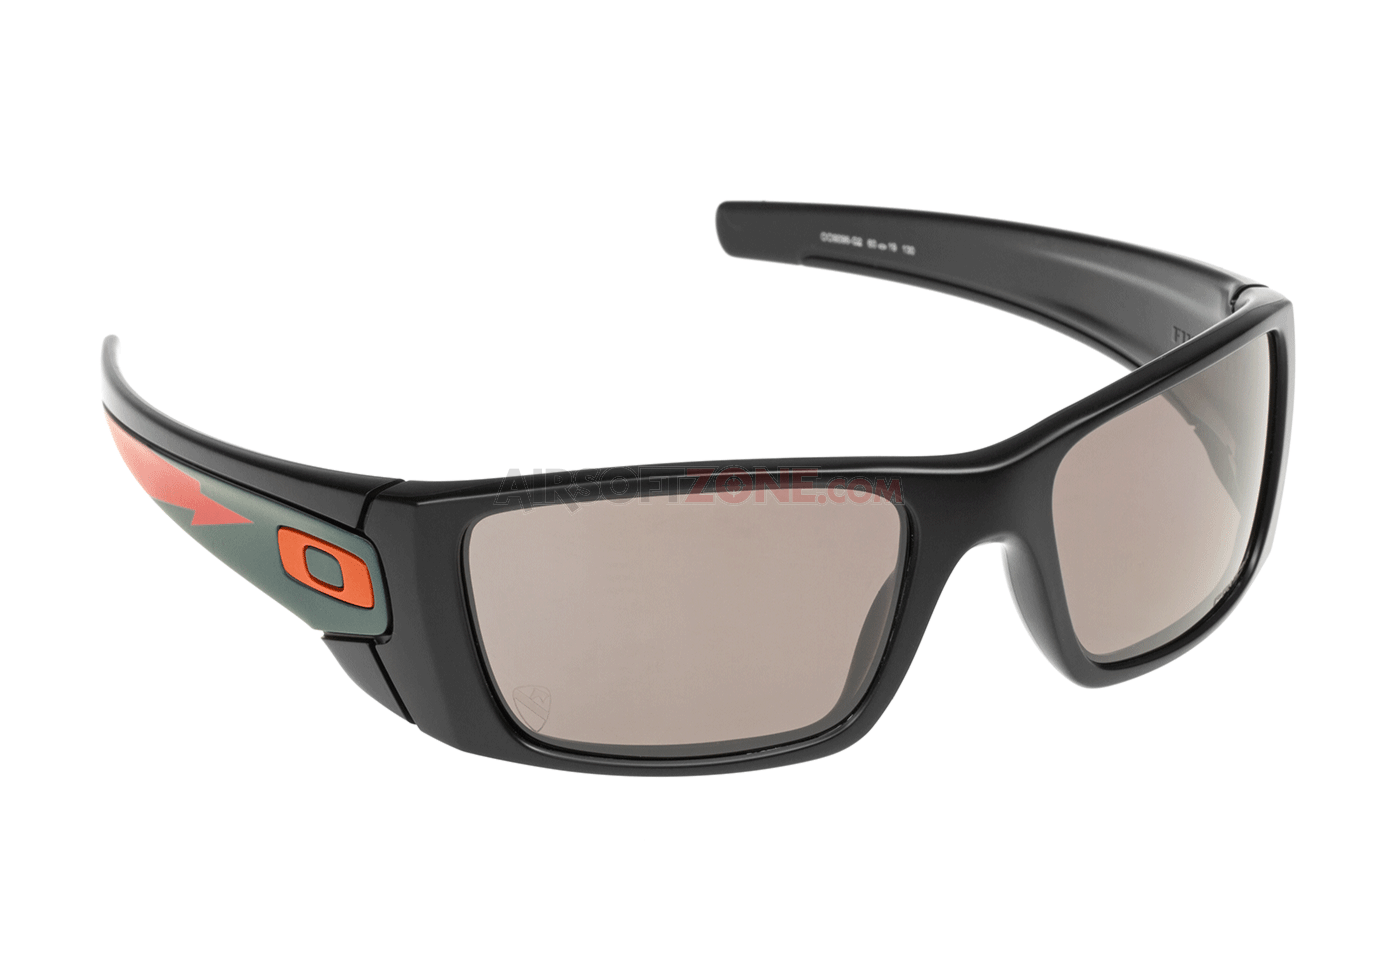 699306ea3c SI Fuel Cell Apocalypse Surf Prizm Polarized Black (Oakley) - Glasses  Polarized - Eyewear